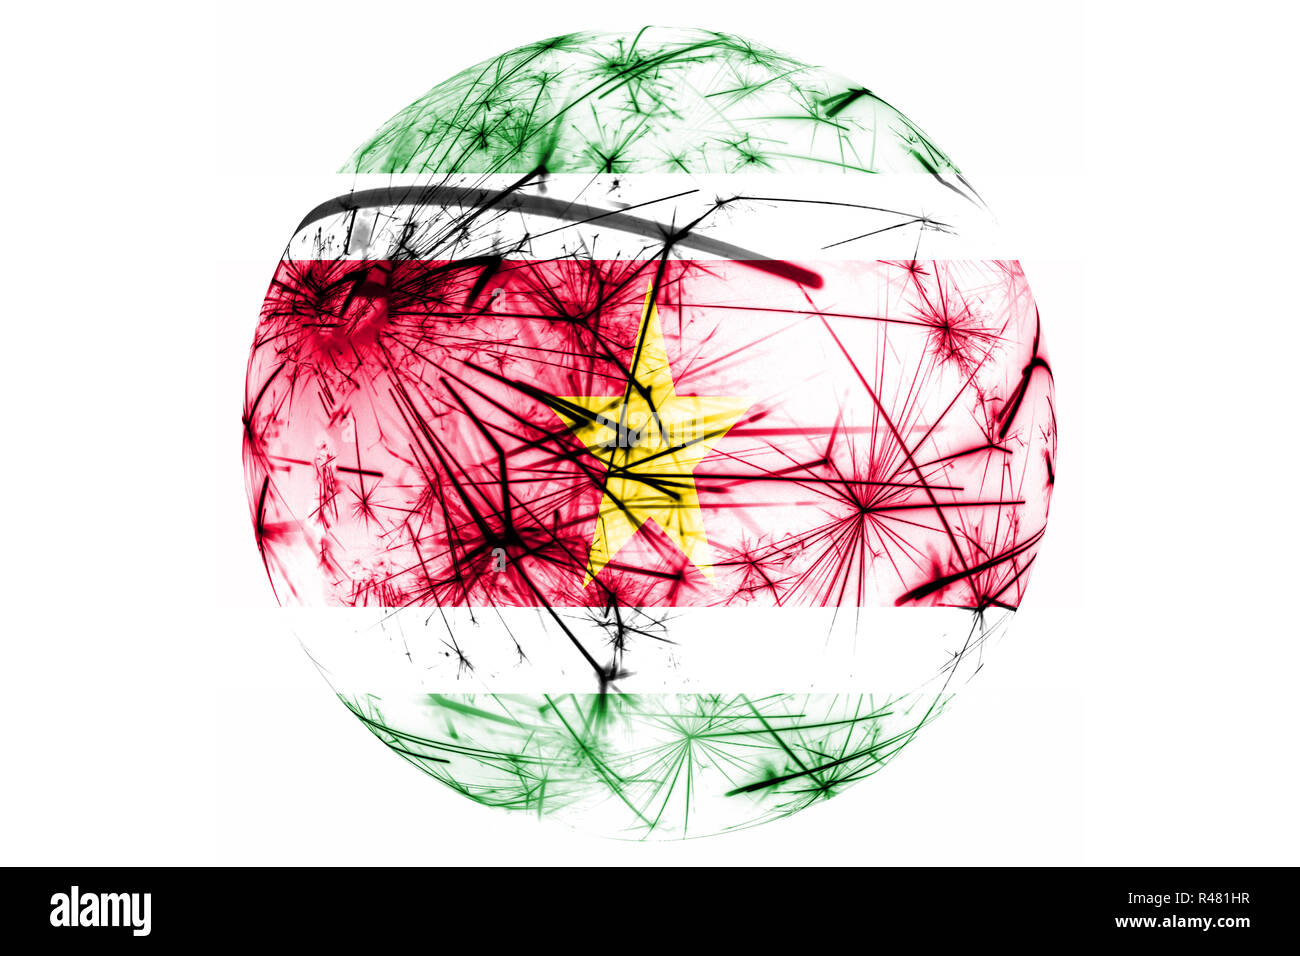 Suriname fireworks sparkling flag ball. New Year, Christmas and National day ornament and decoration concept - Stock Image